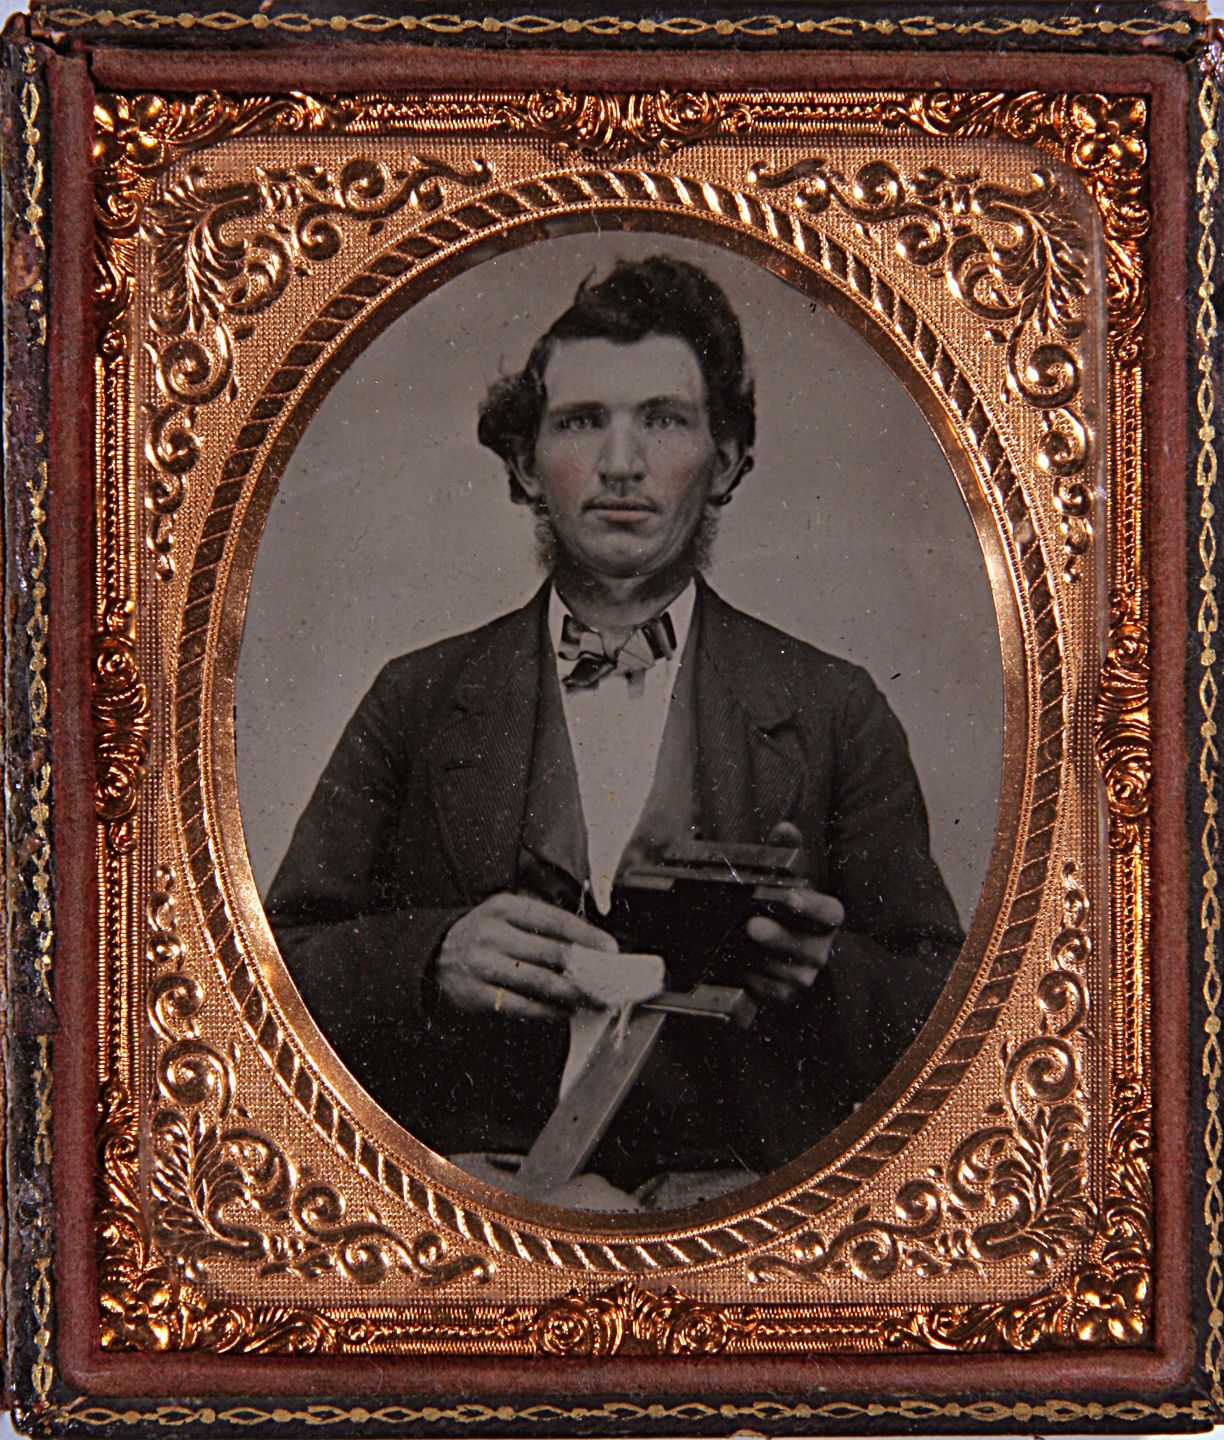 PHOTOGRAPHER POLISHES PLATE Early Occupational 6th Plate Ambrotype | eBay